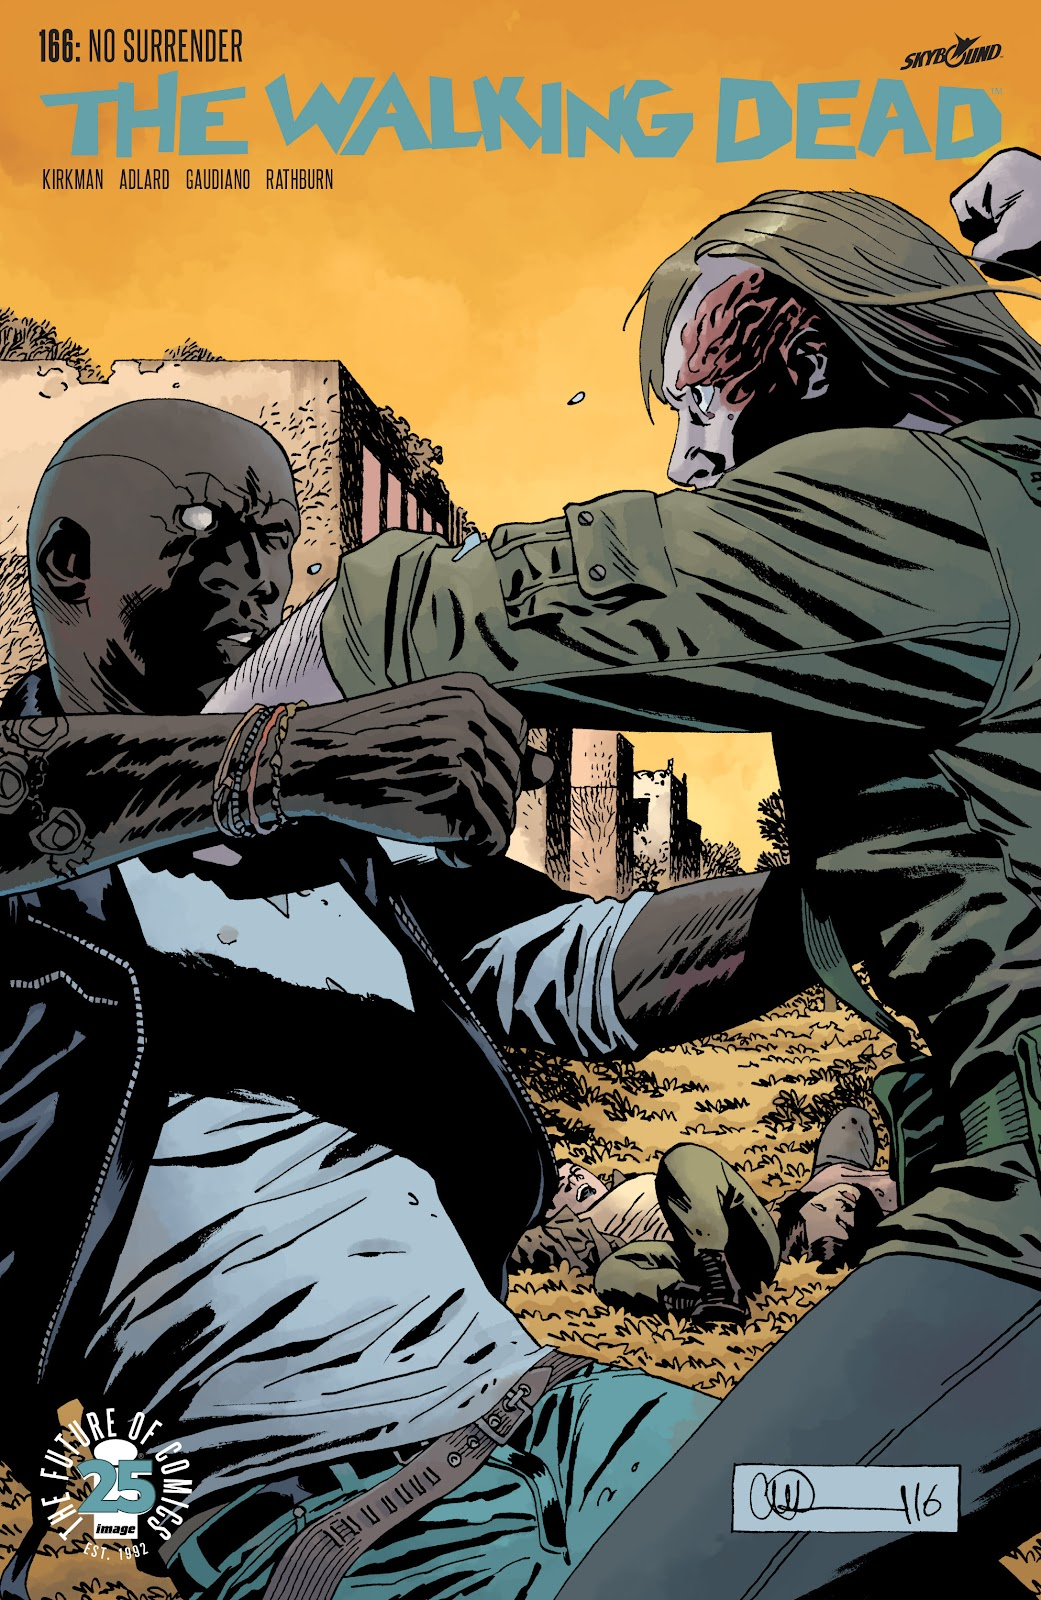 The Walking Dead Issue #166 Page 1